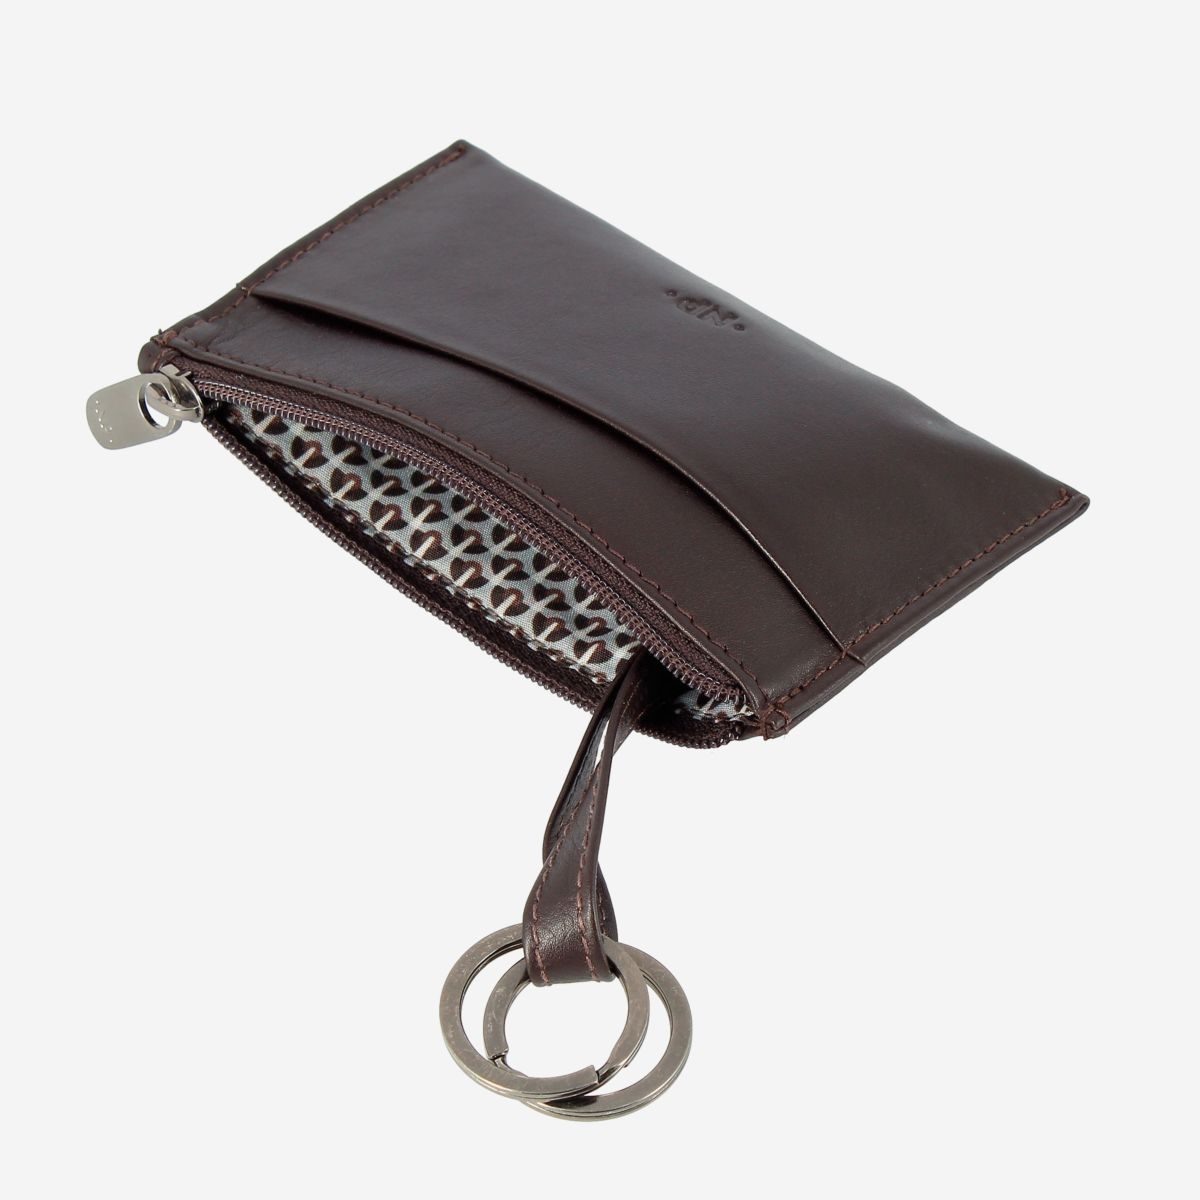 NUVOLA PELLE Leather Coin Purse - Dark Brown